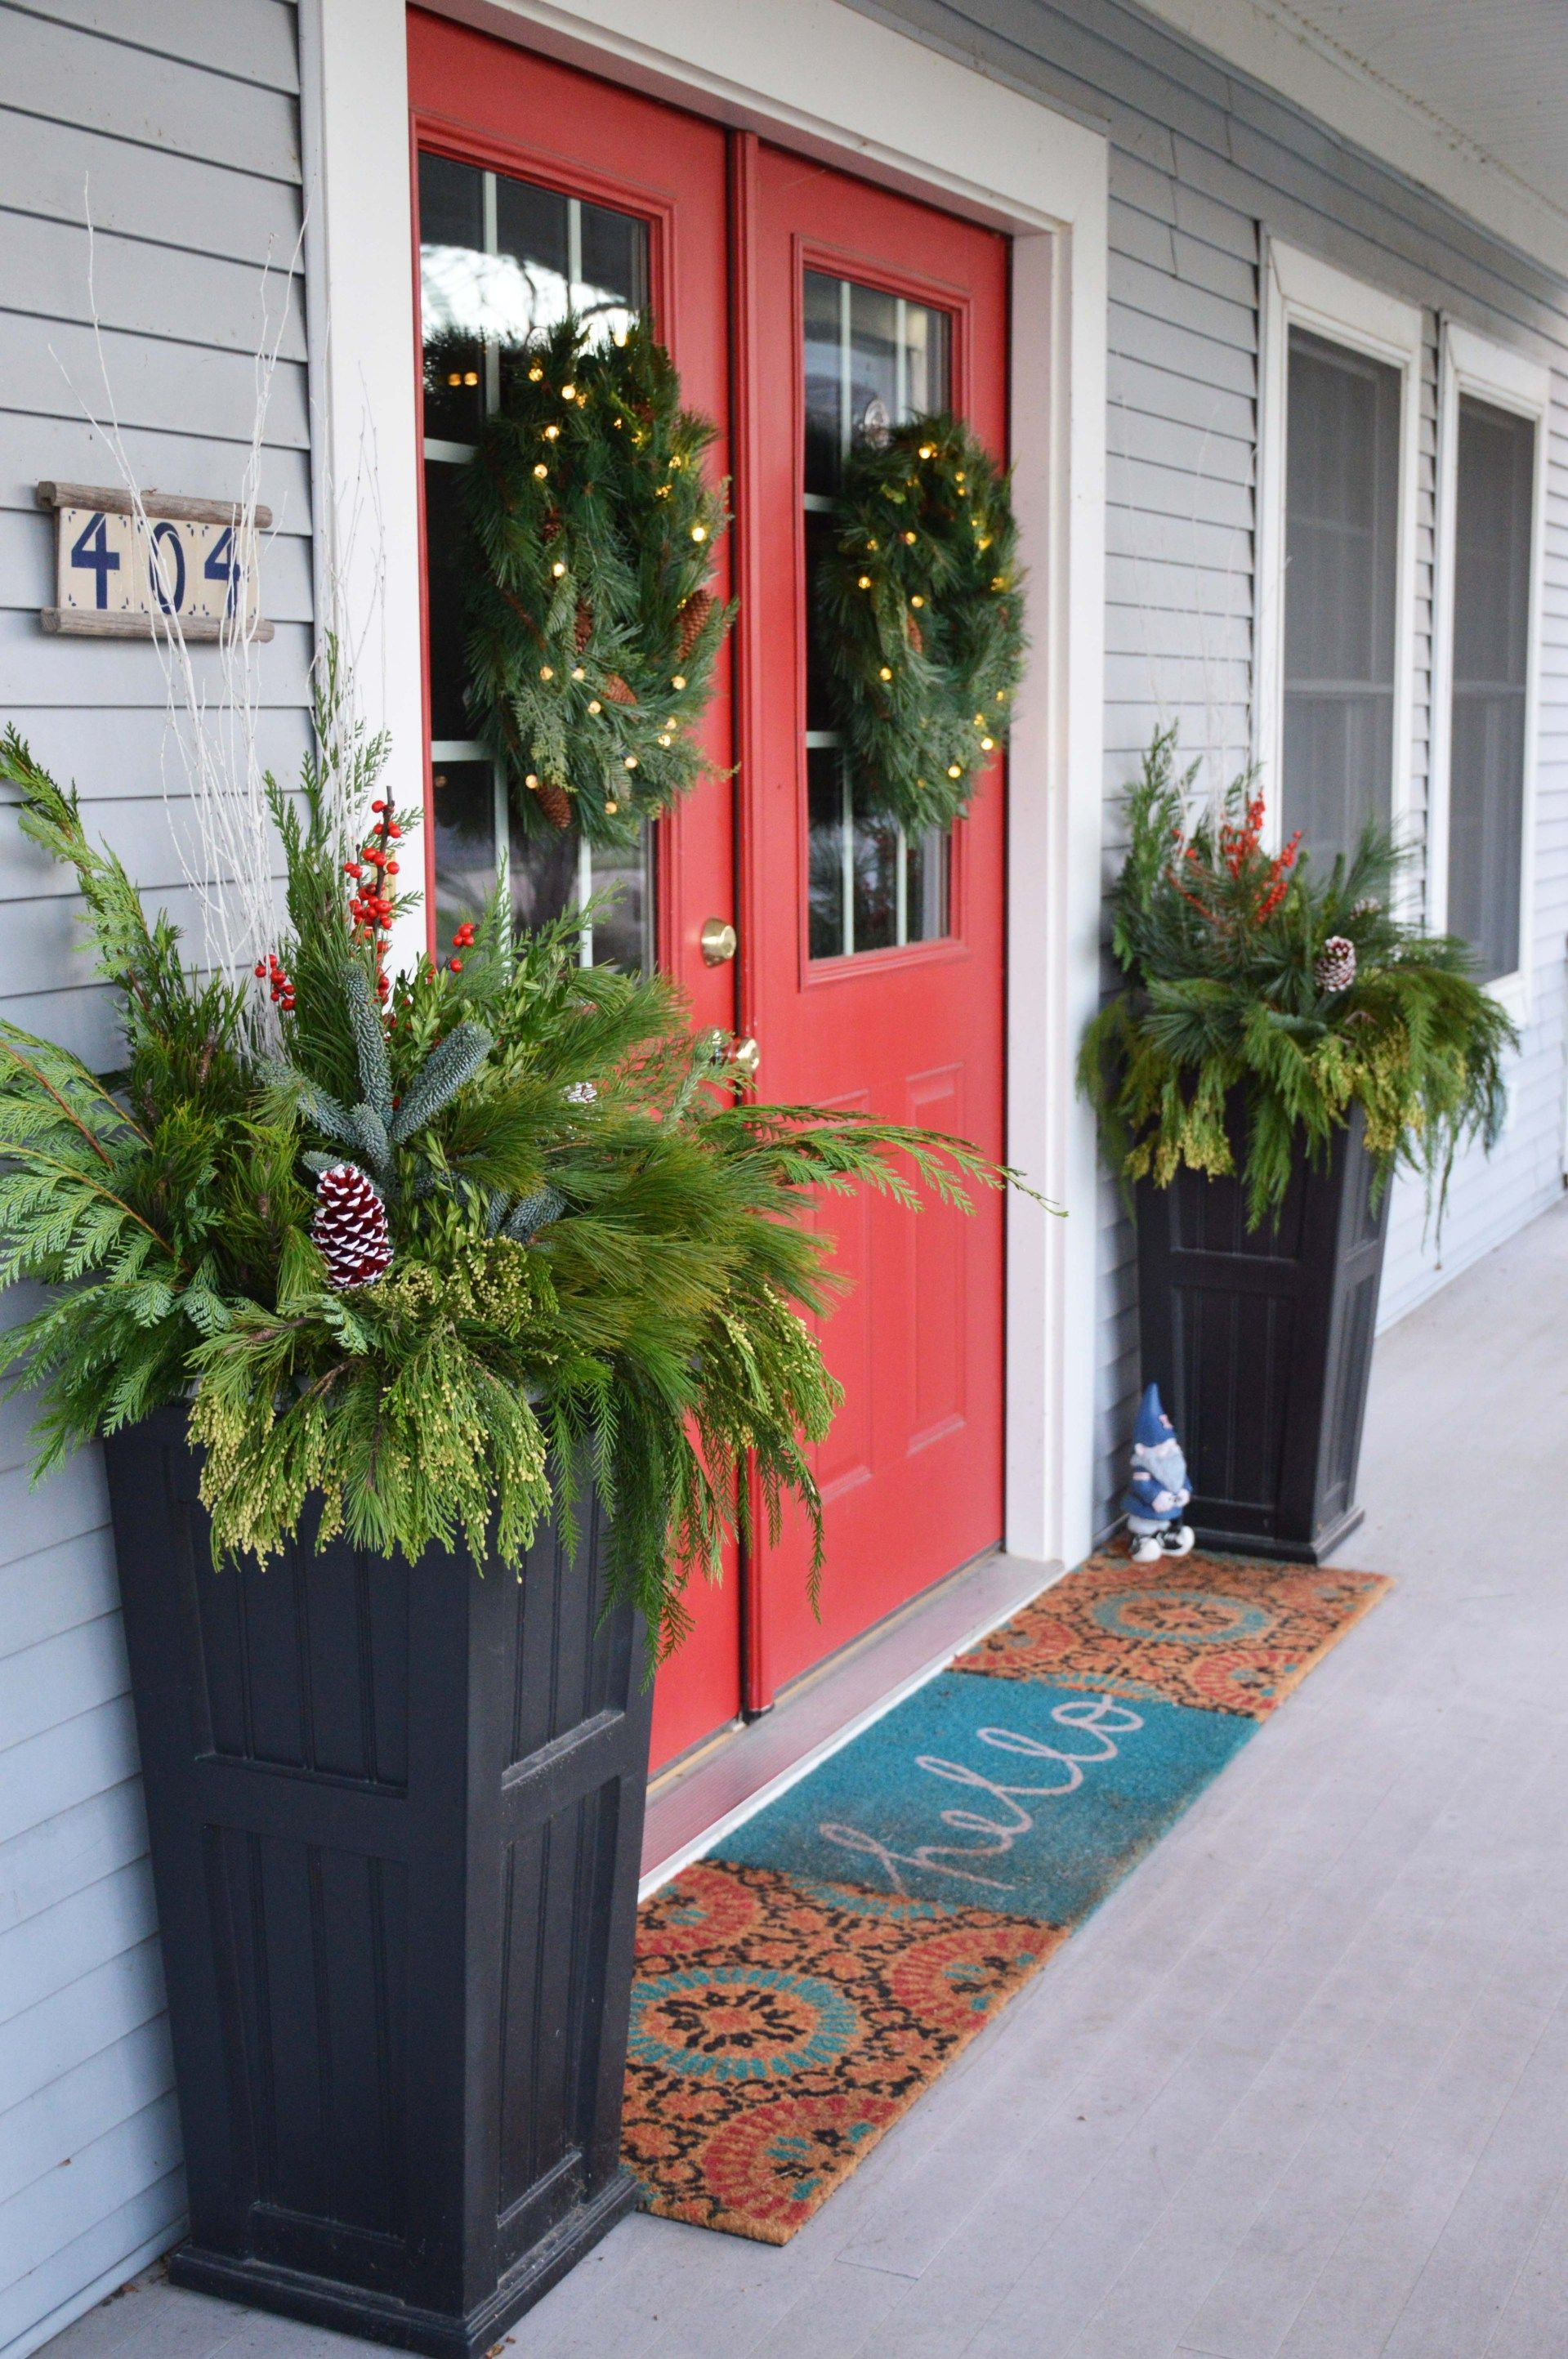 concept planter full planters decor with size based uk home tag ideas idea front fall articles natural of door